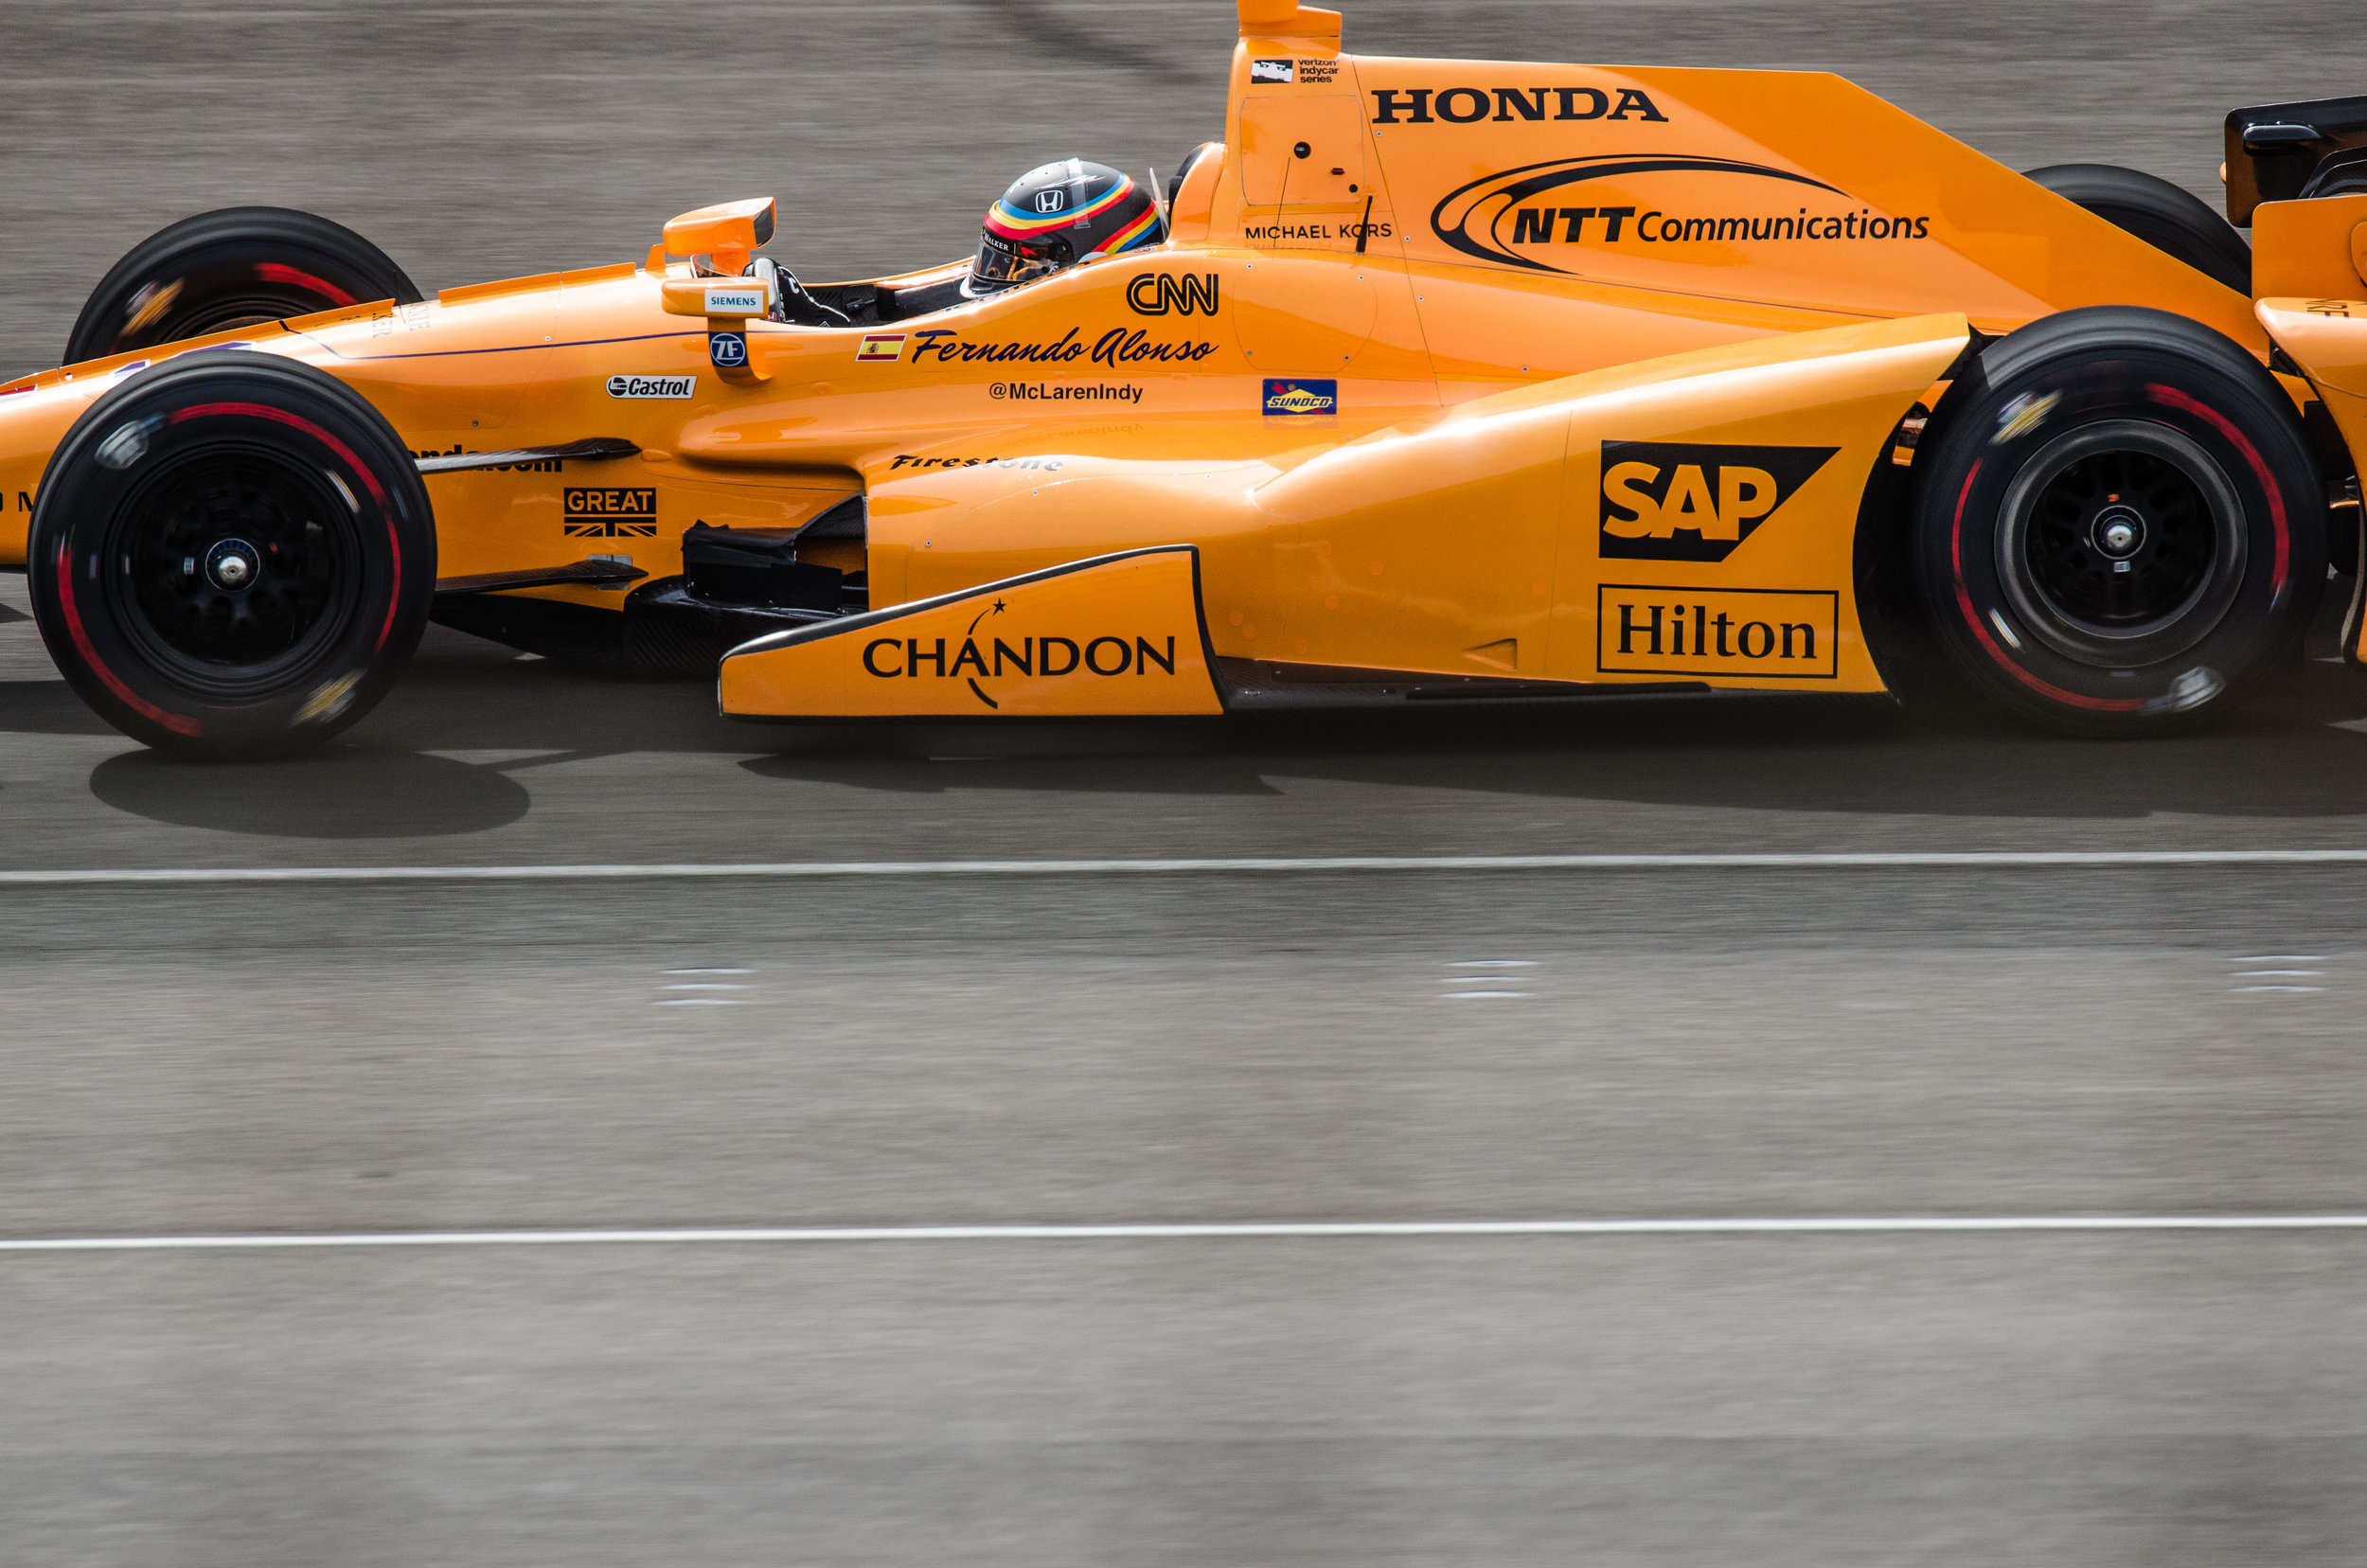 Alonso Indy Test (full size) (22 of 29).jpg